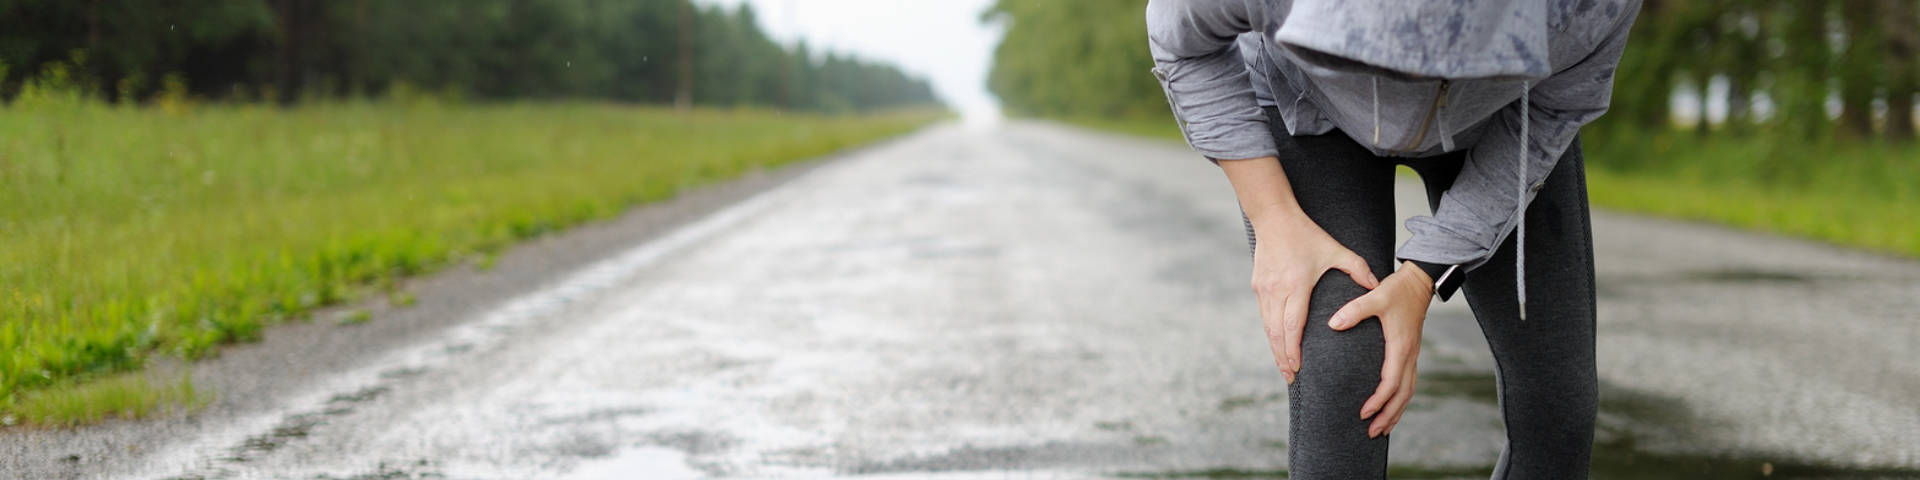 a runner stopped by unexpected knee pain